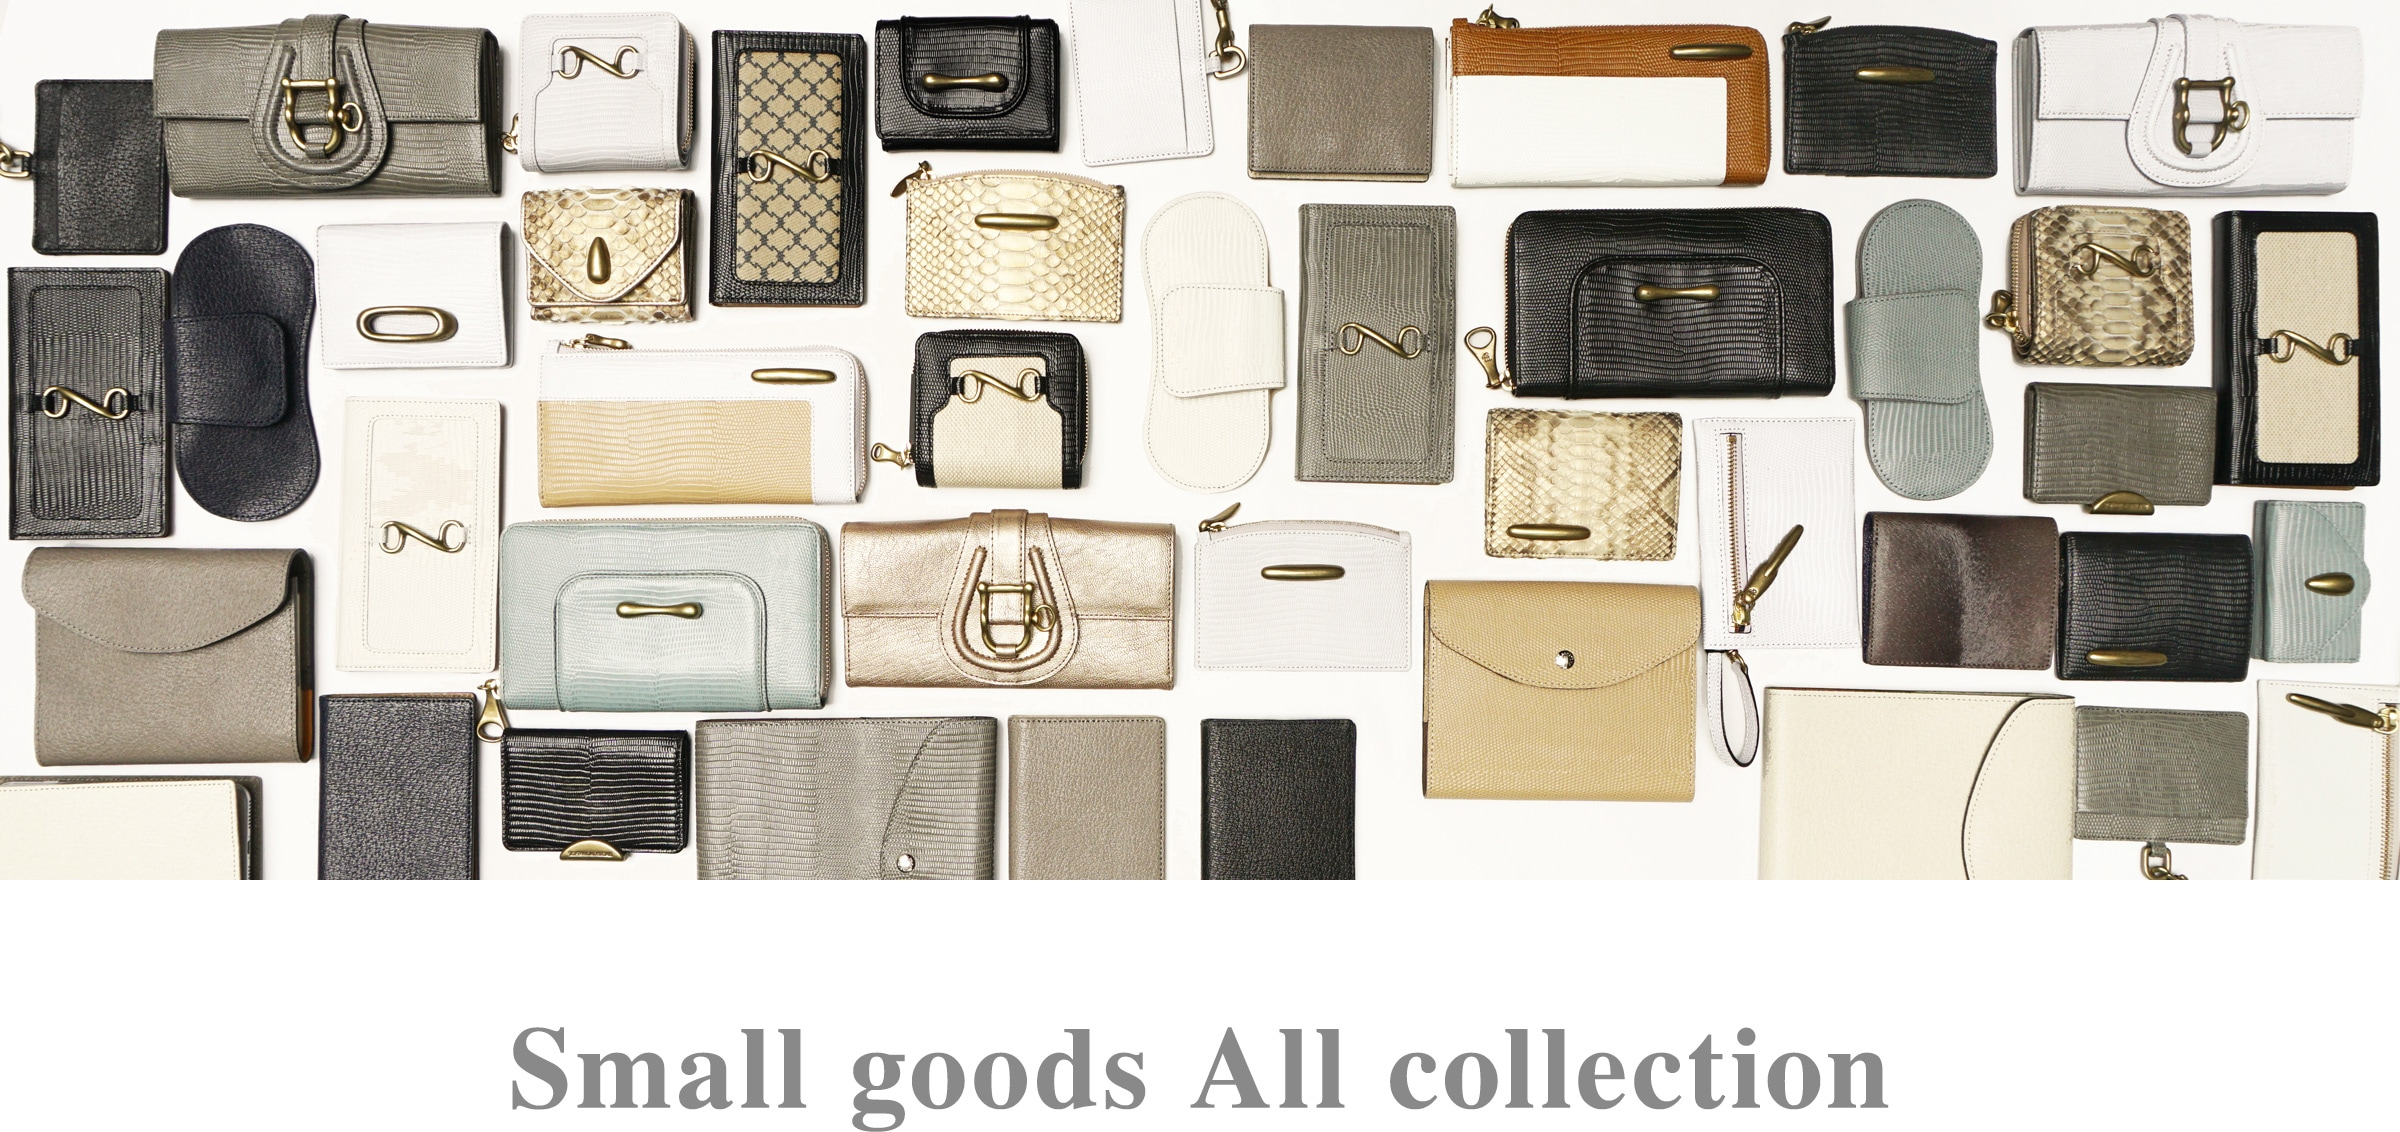 Small goods All collection